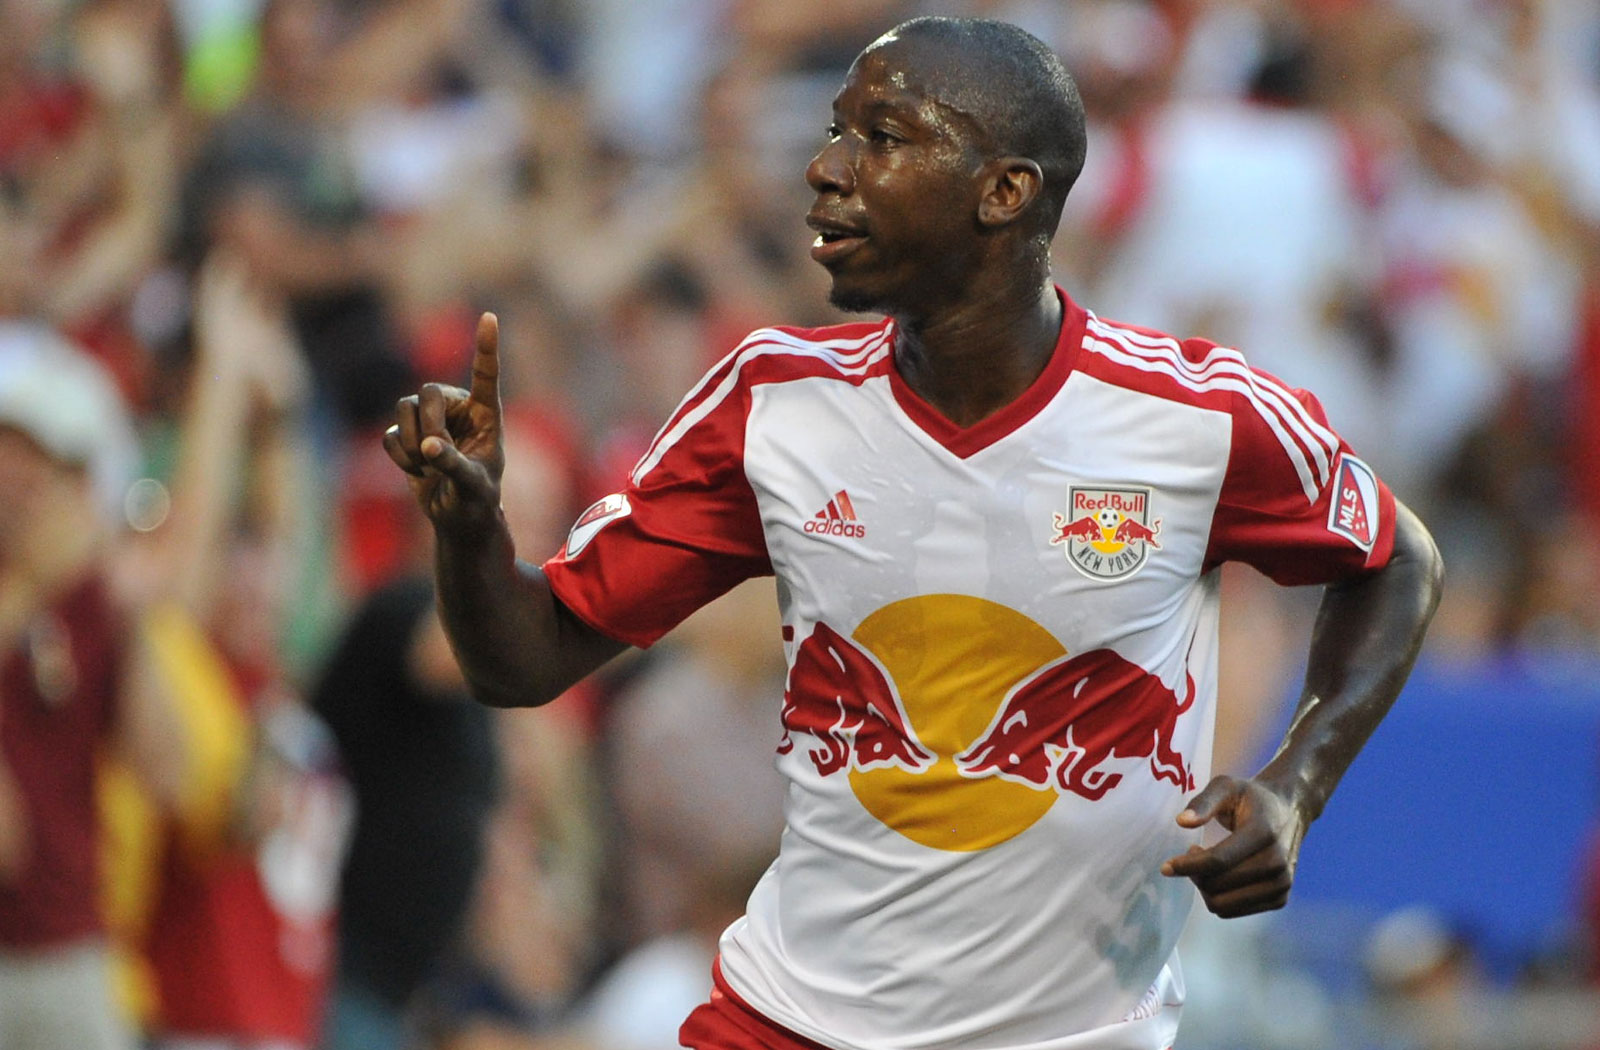 Bradley Wright-Phillips celebrates his goal that gave the Red Bulls a 1-0 lead over NYCFC in their third meeting of the 2015 season.